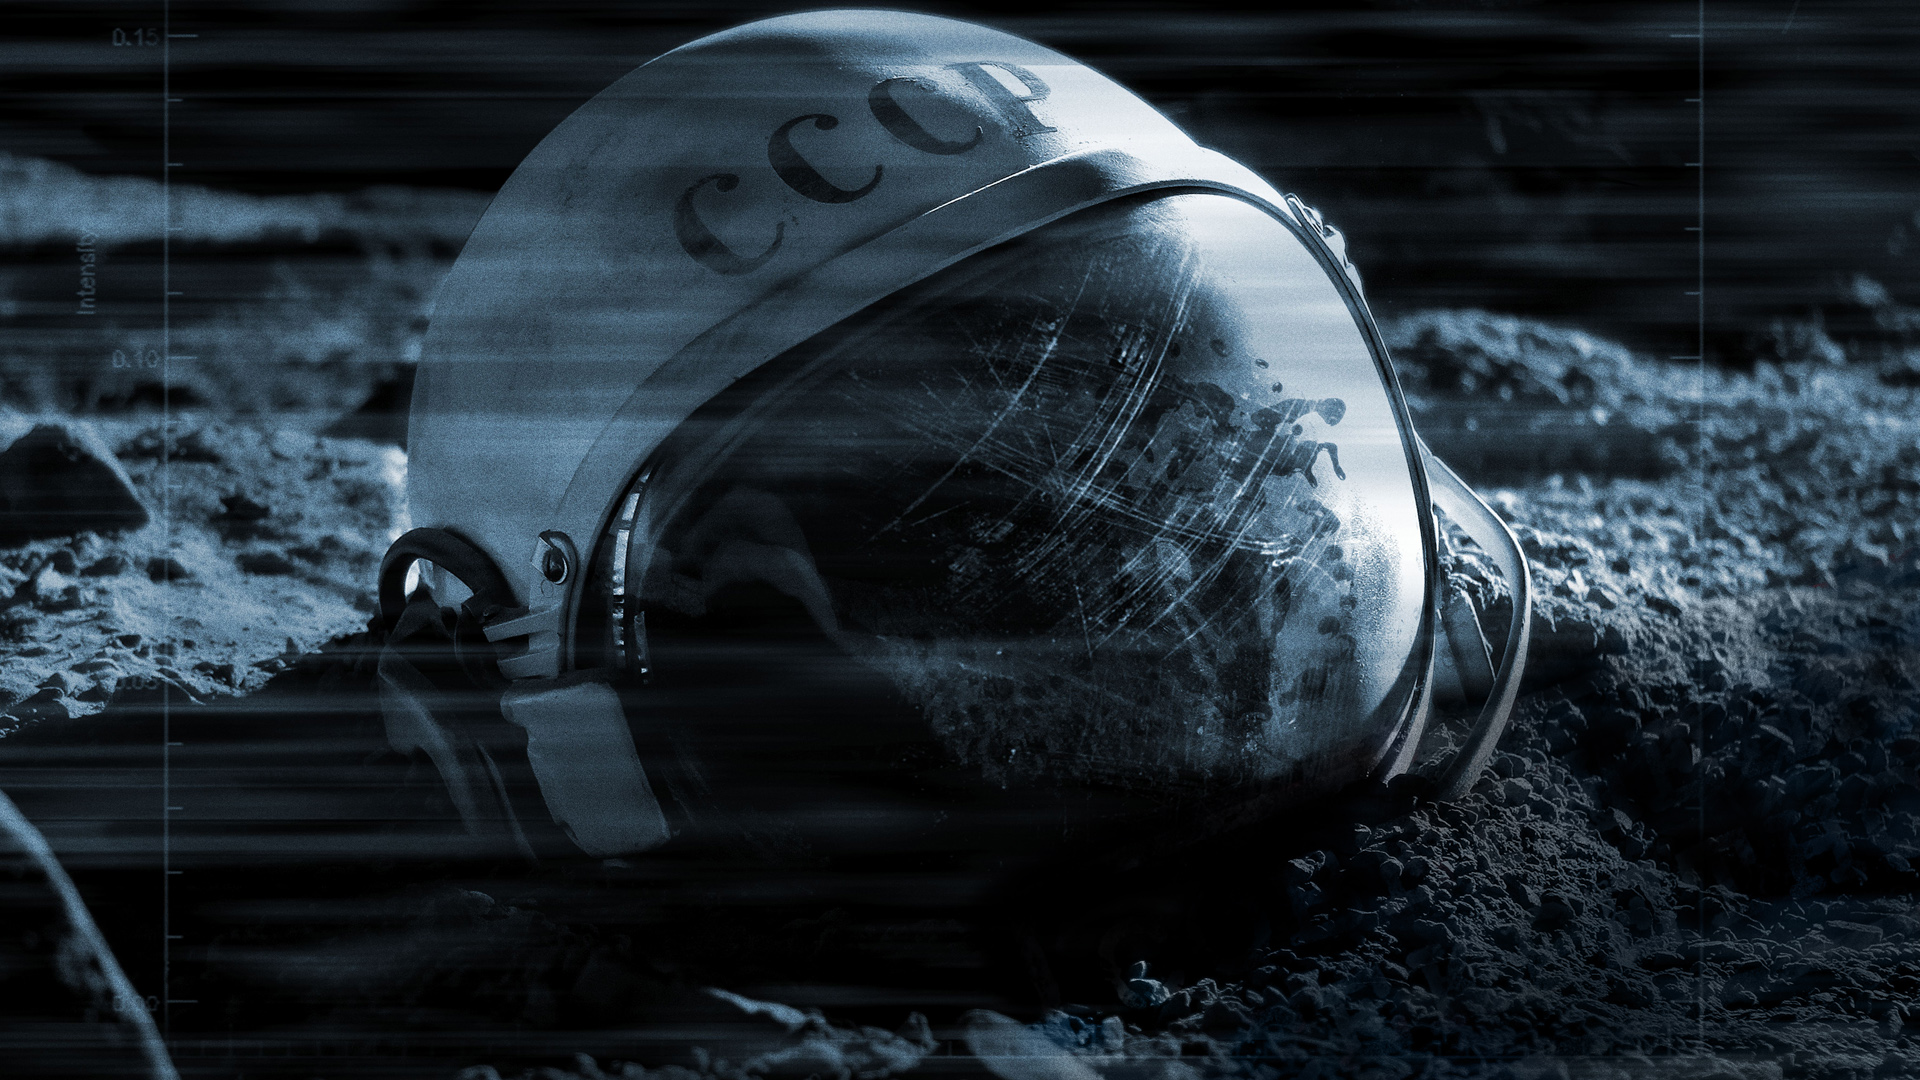 sci fi movie the astronaut - photo #35